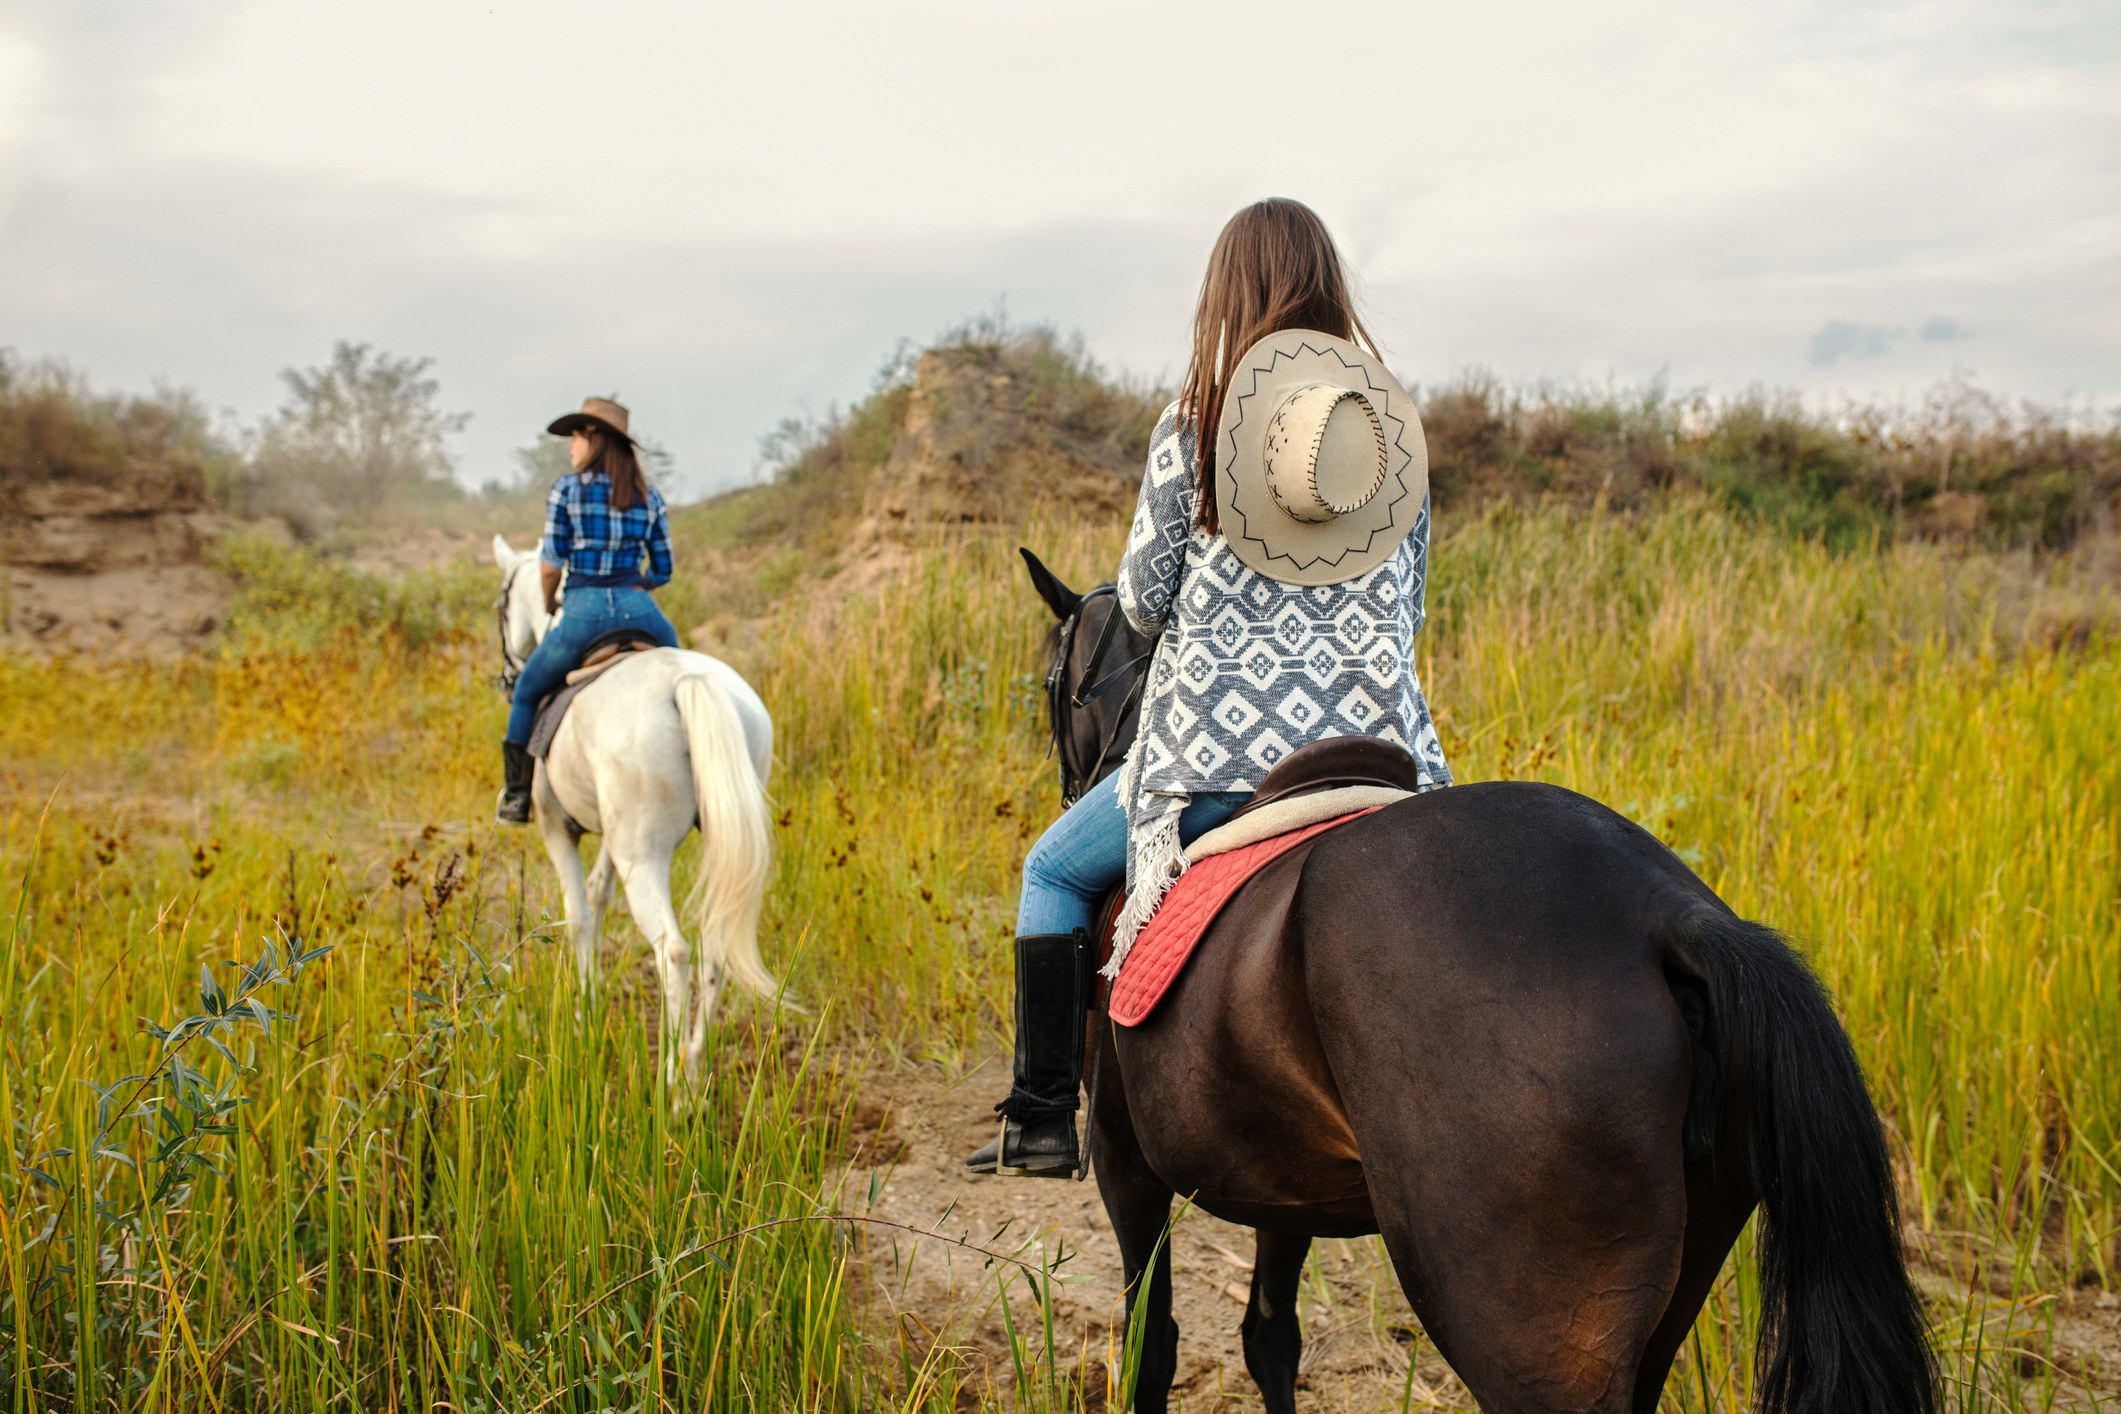 Two women on a trail ride with horses.